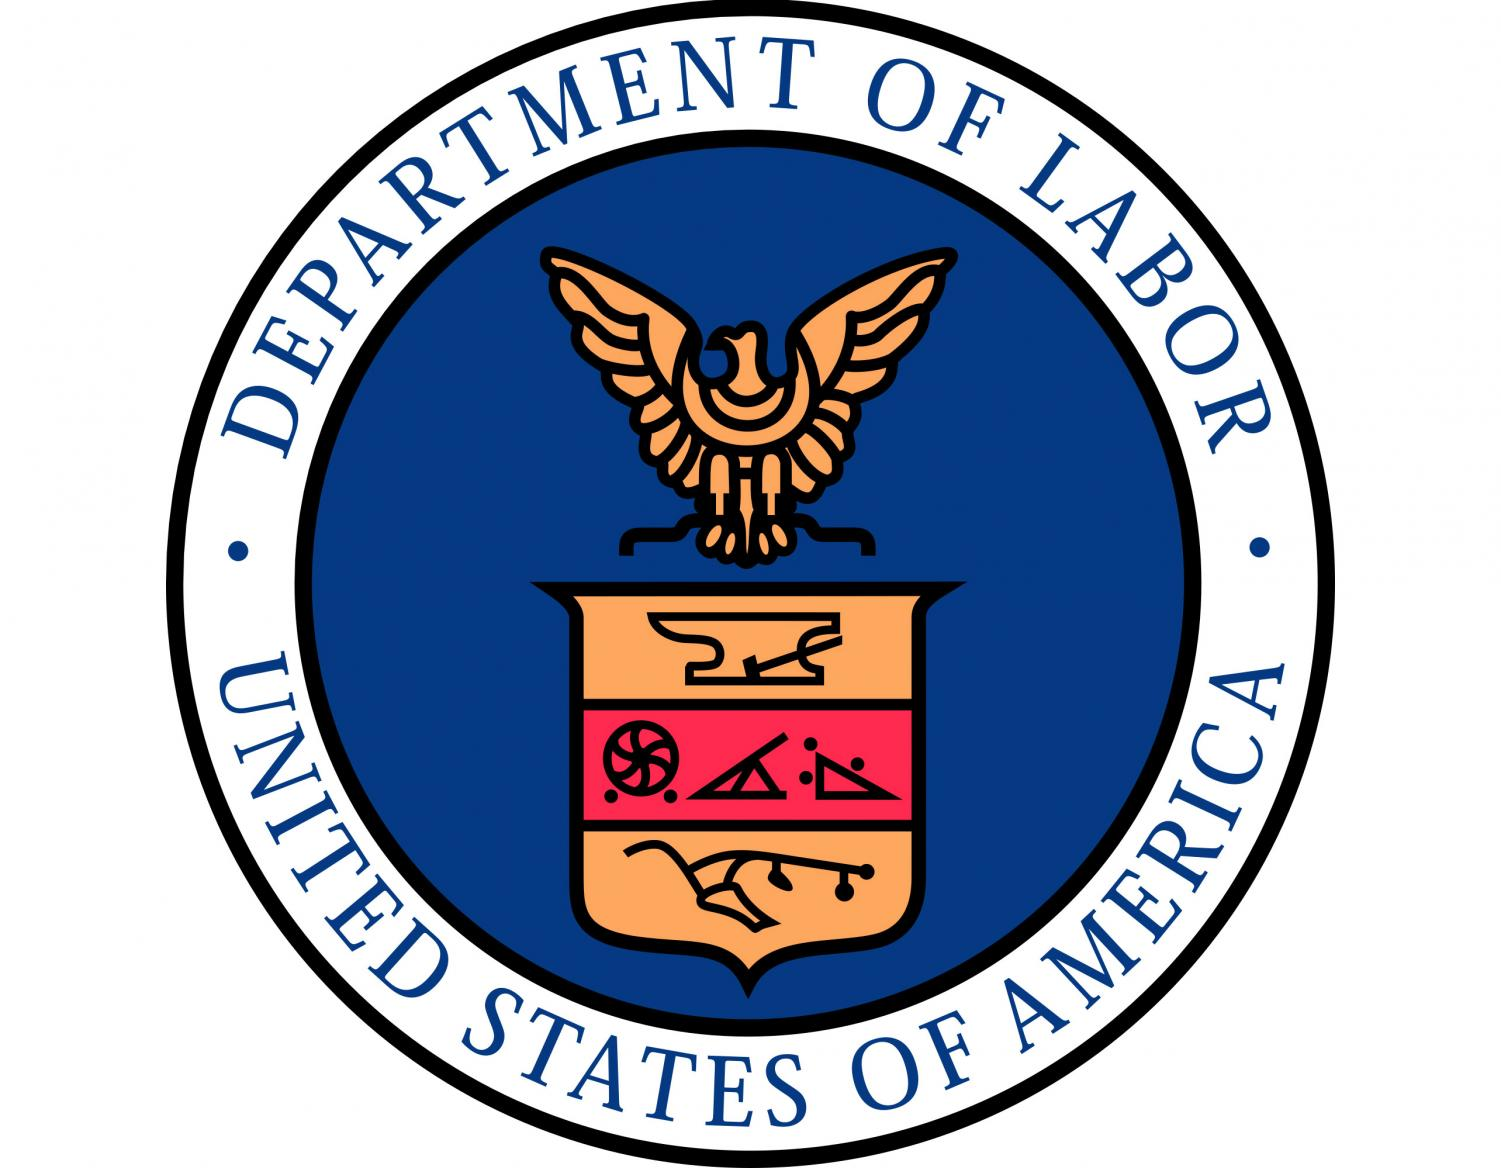 The Department of Labor is responsible for the federal execution of the Family and Medical Leave Act of 1993.